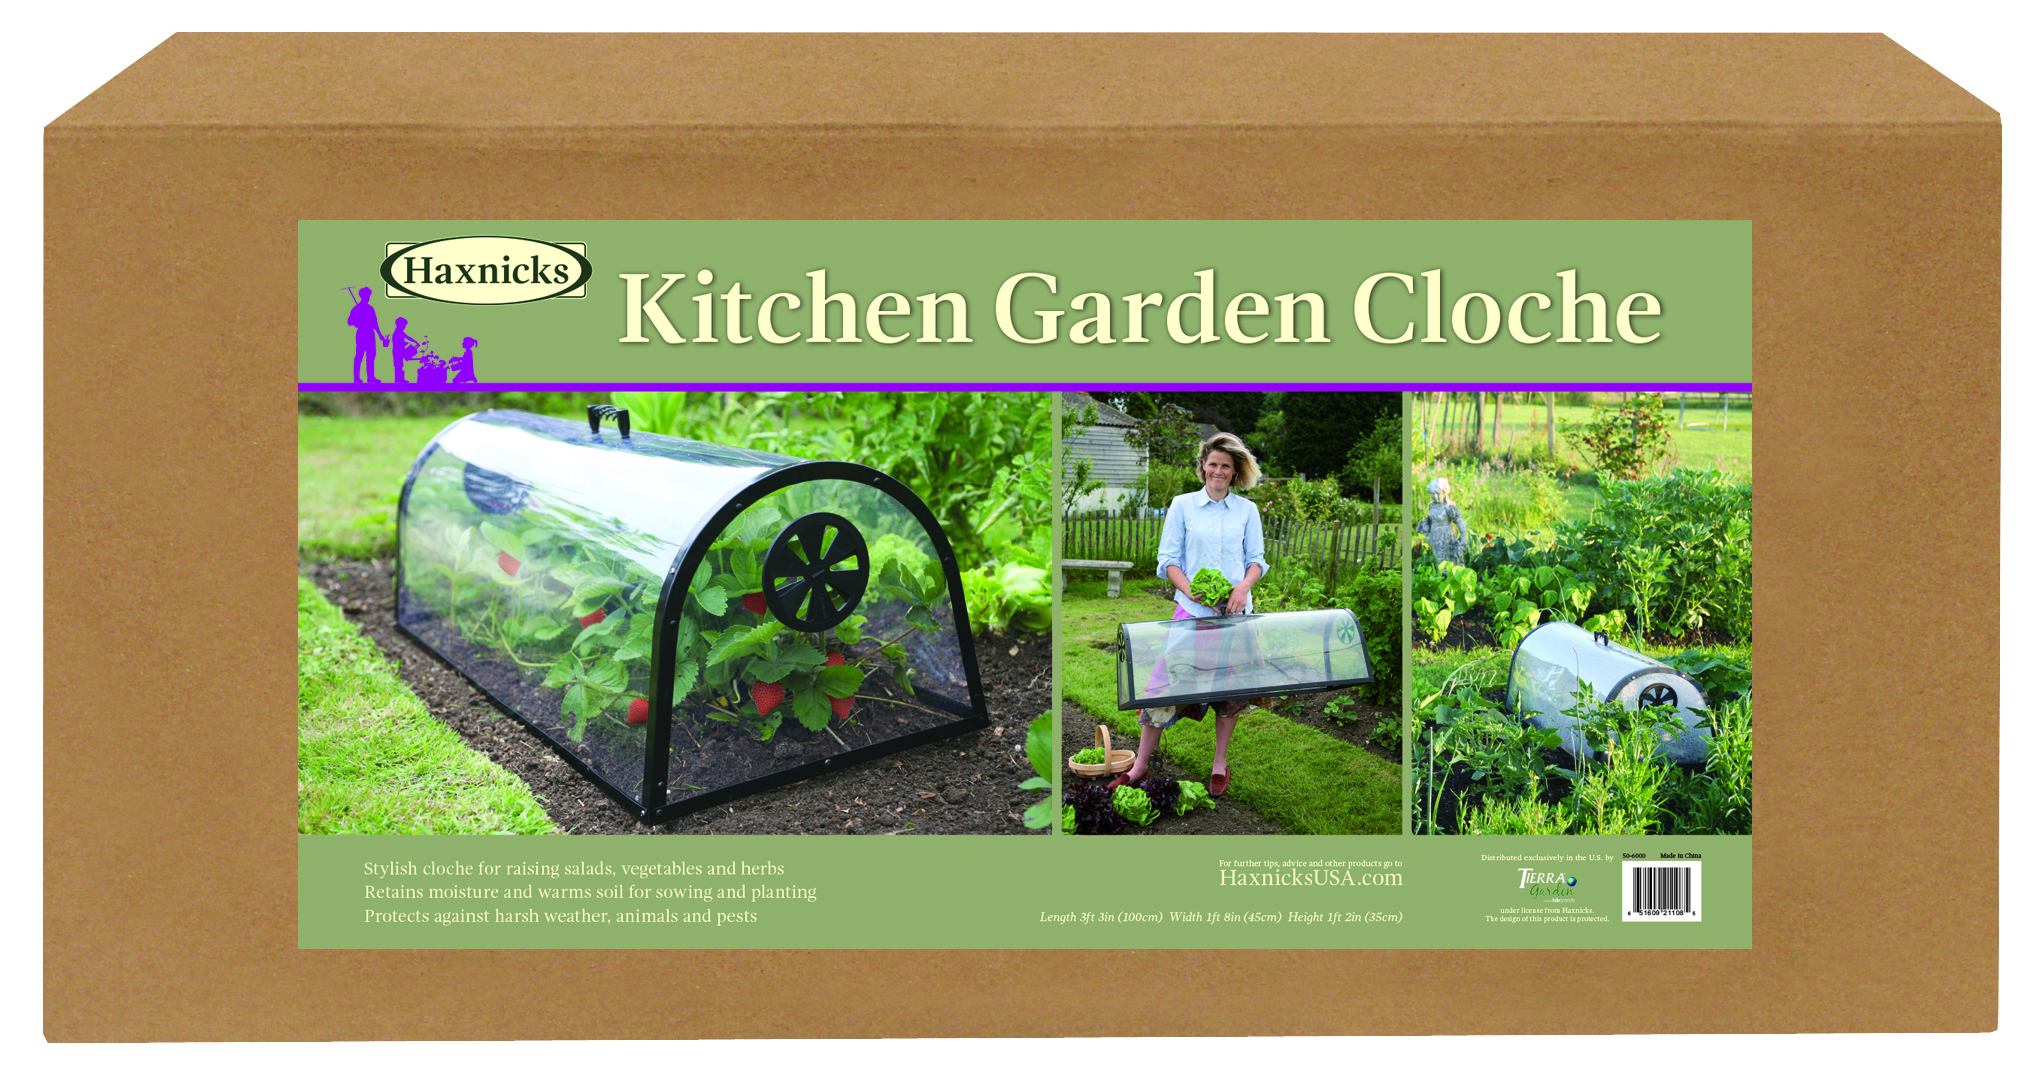 Haxnicks Kitchen Garden Cloche.jpg